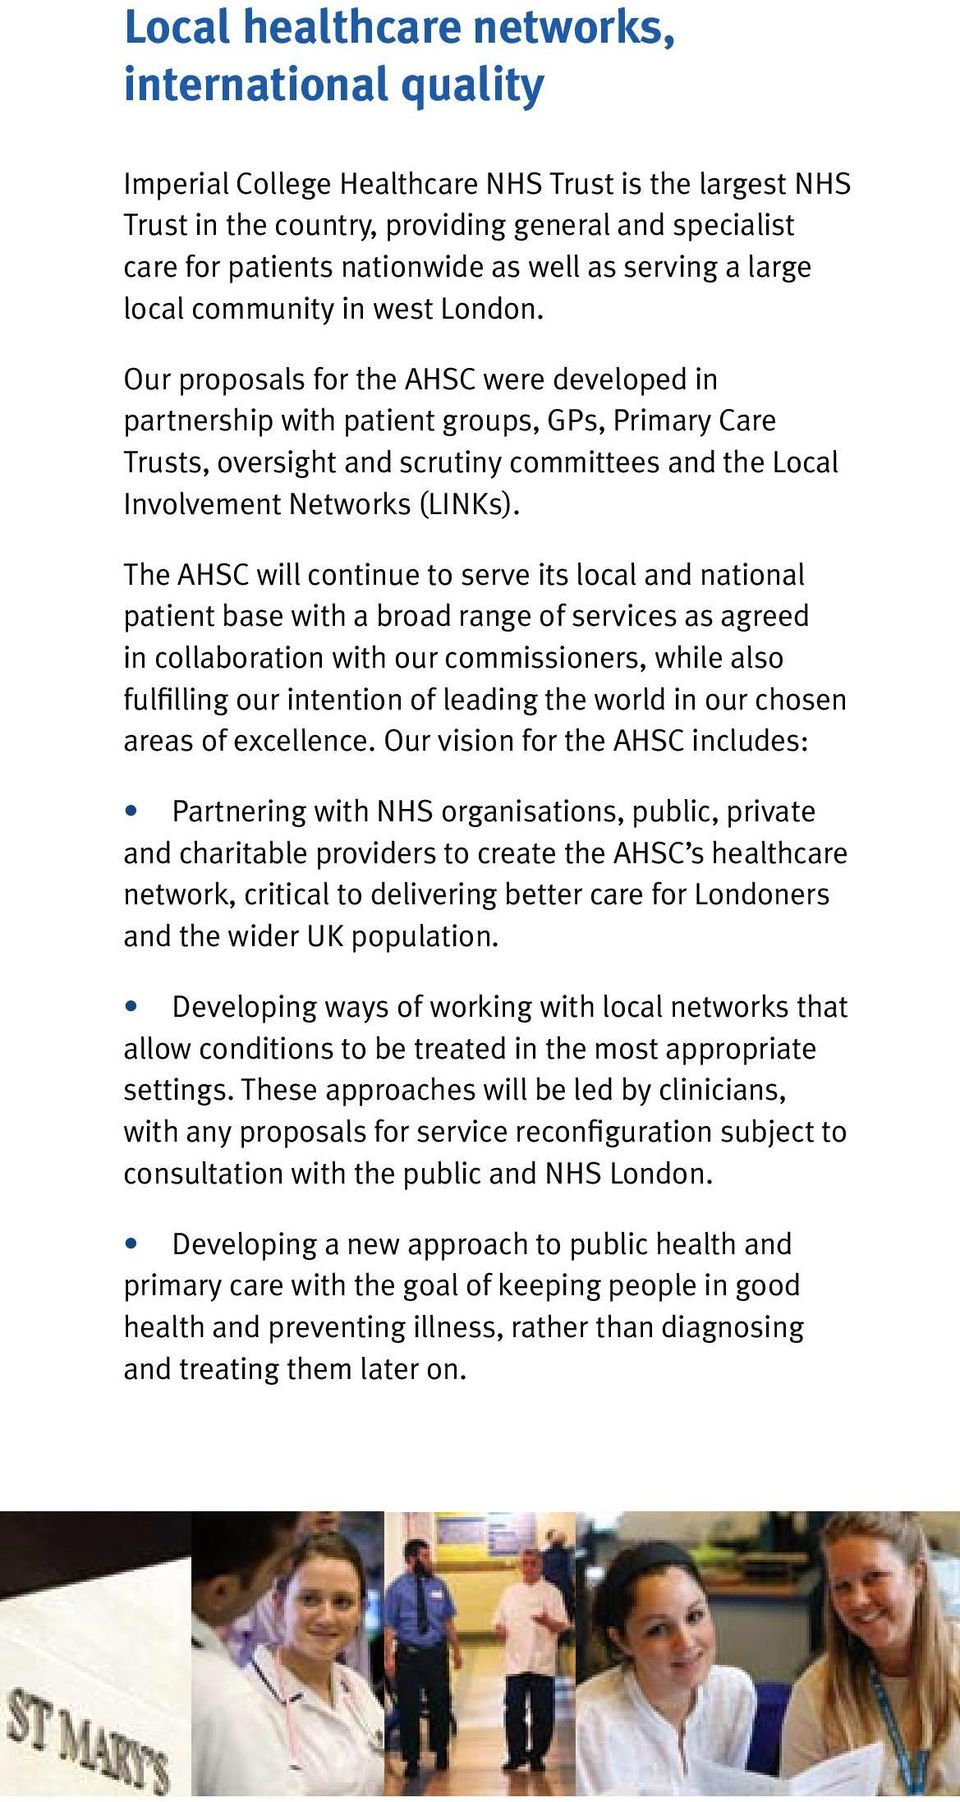 Our proposals for the AHSC were developed in partnership with patient groups, GPs, Primary Care Trusts, oversight and scrutiny committees and the Local Involvement Networks (LINKs).